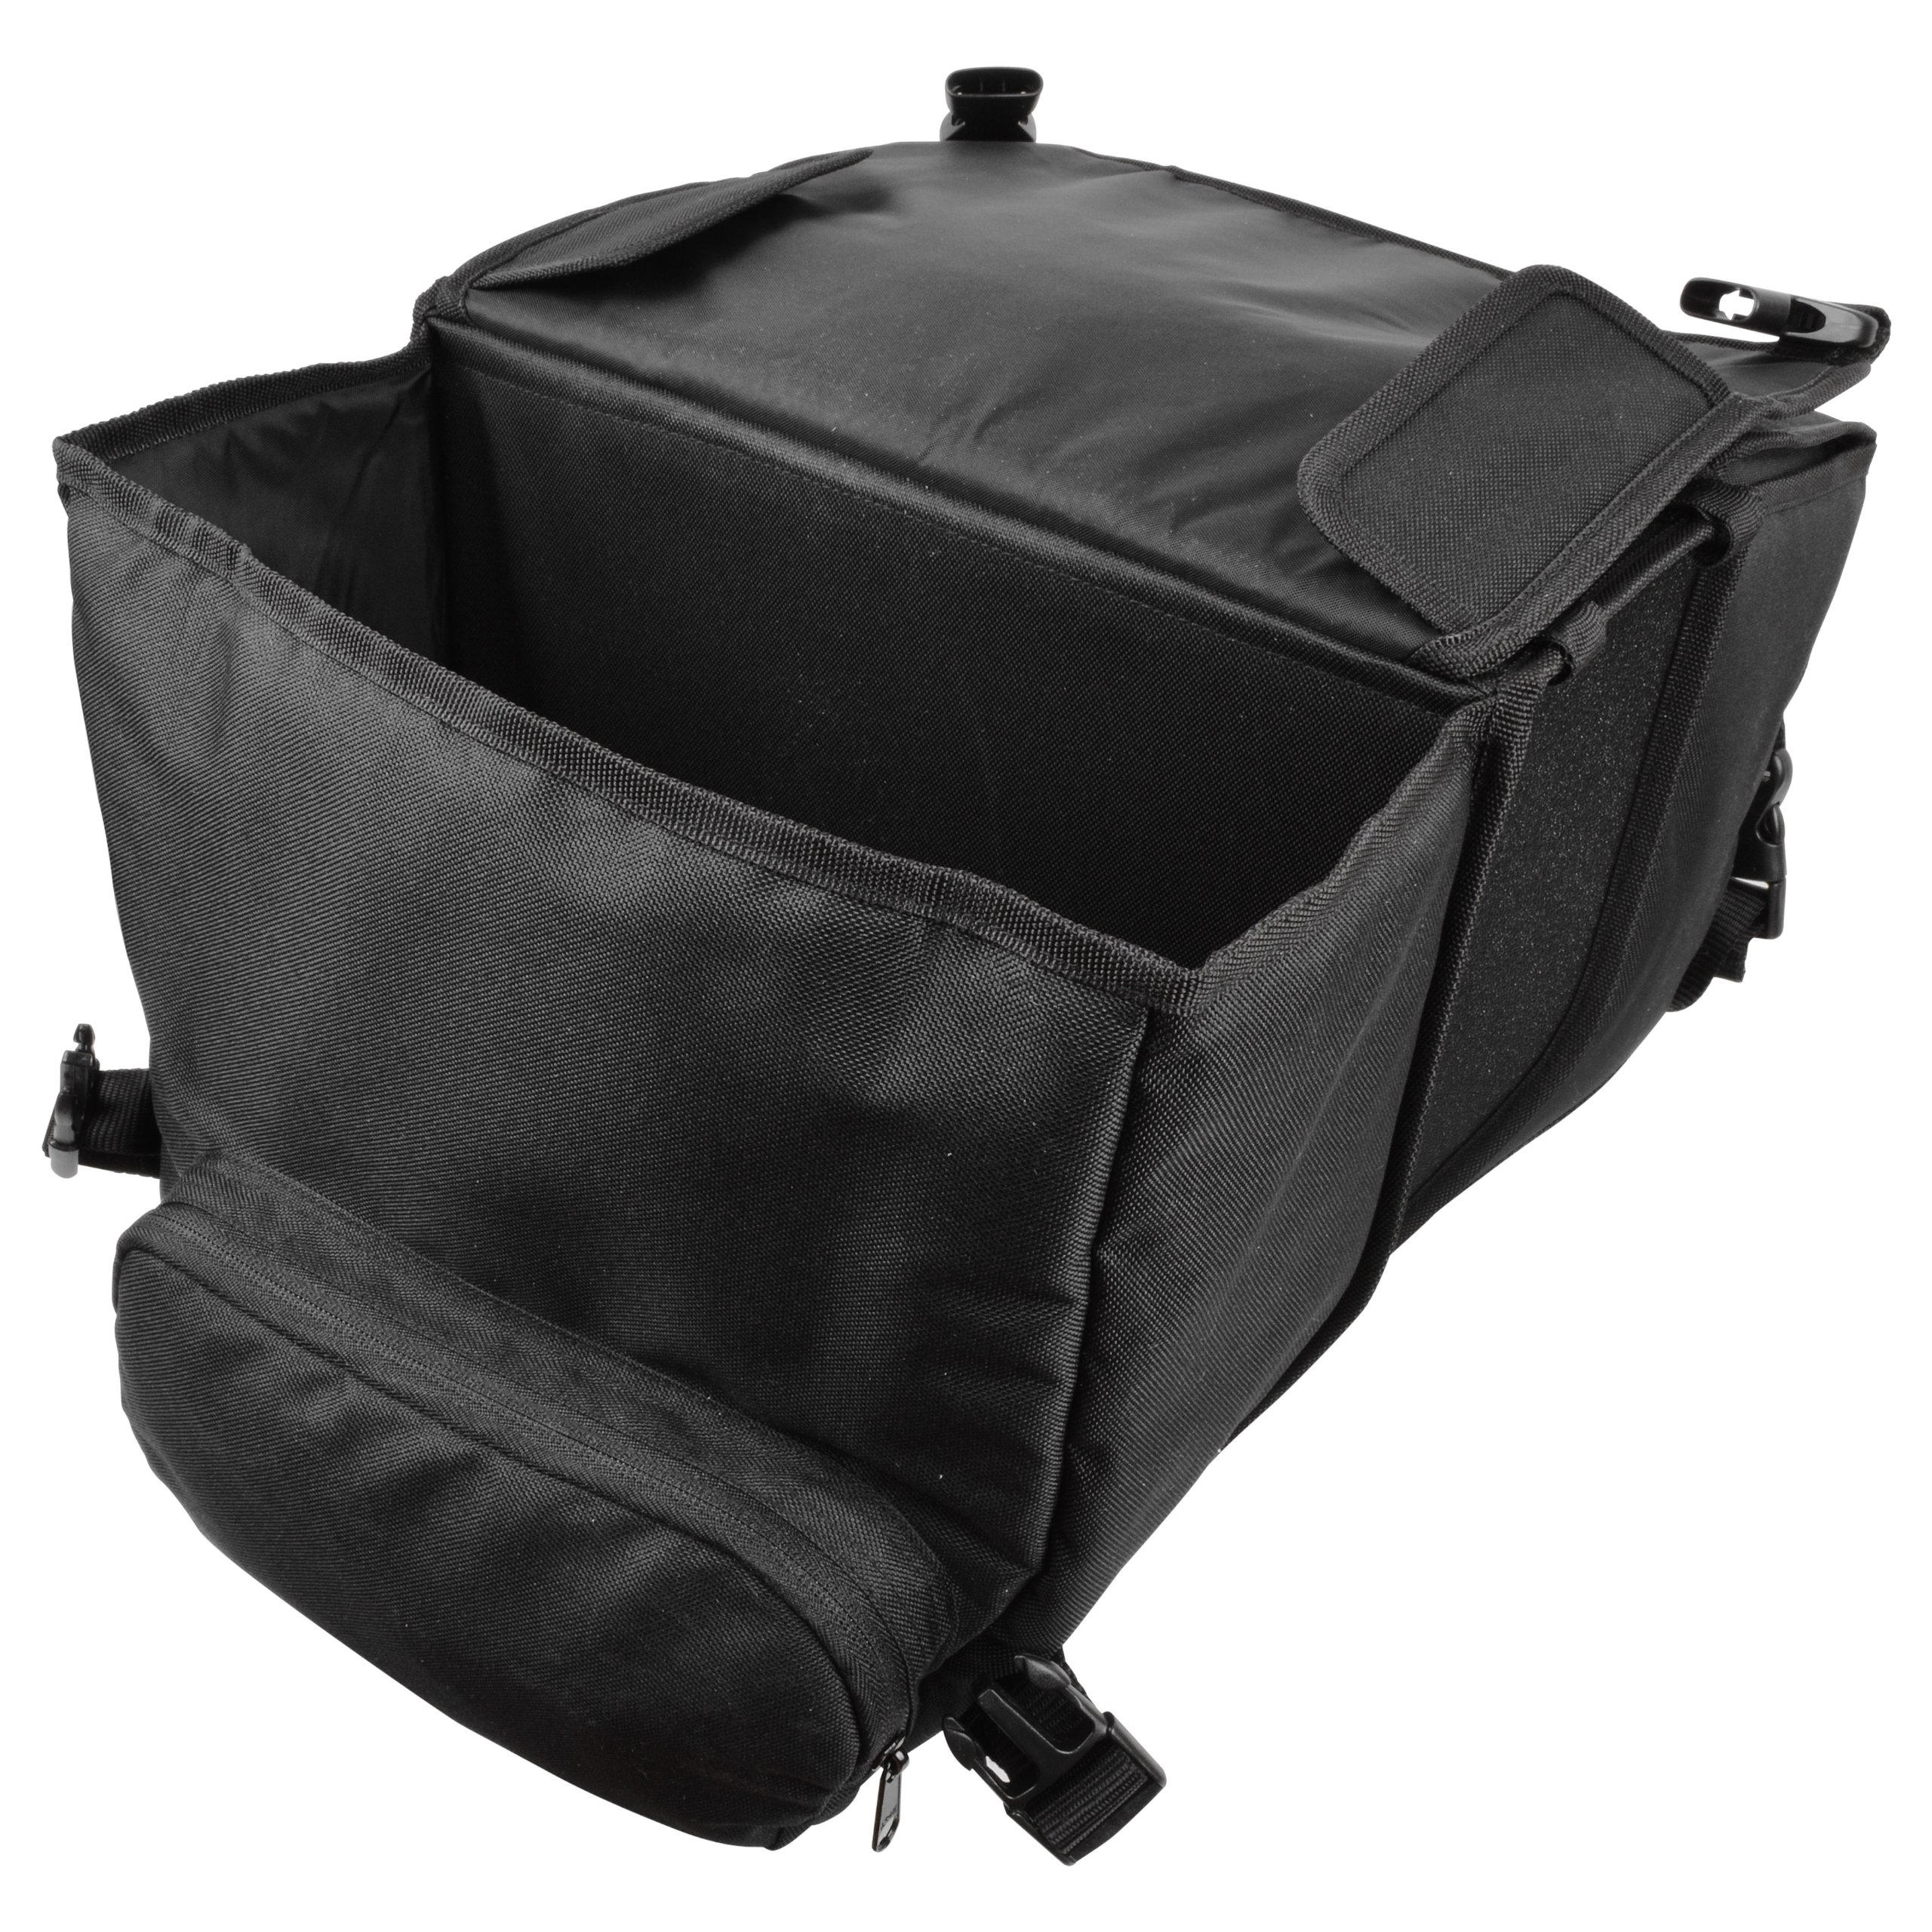 Ibera Bicycle Side-Mounting Pannier Set, Bike Panniers with Multi-Compartments, Slit on Top to Mount on Smaller Racks  by Ibera (Image #7)